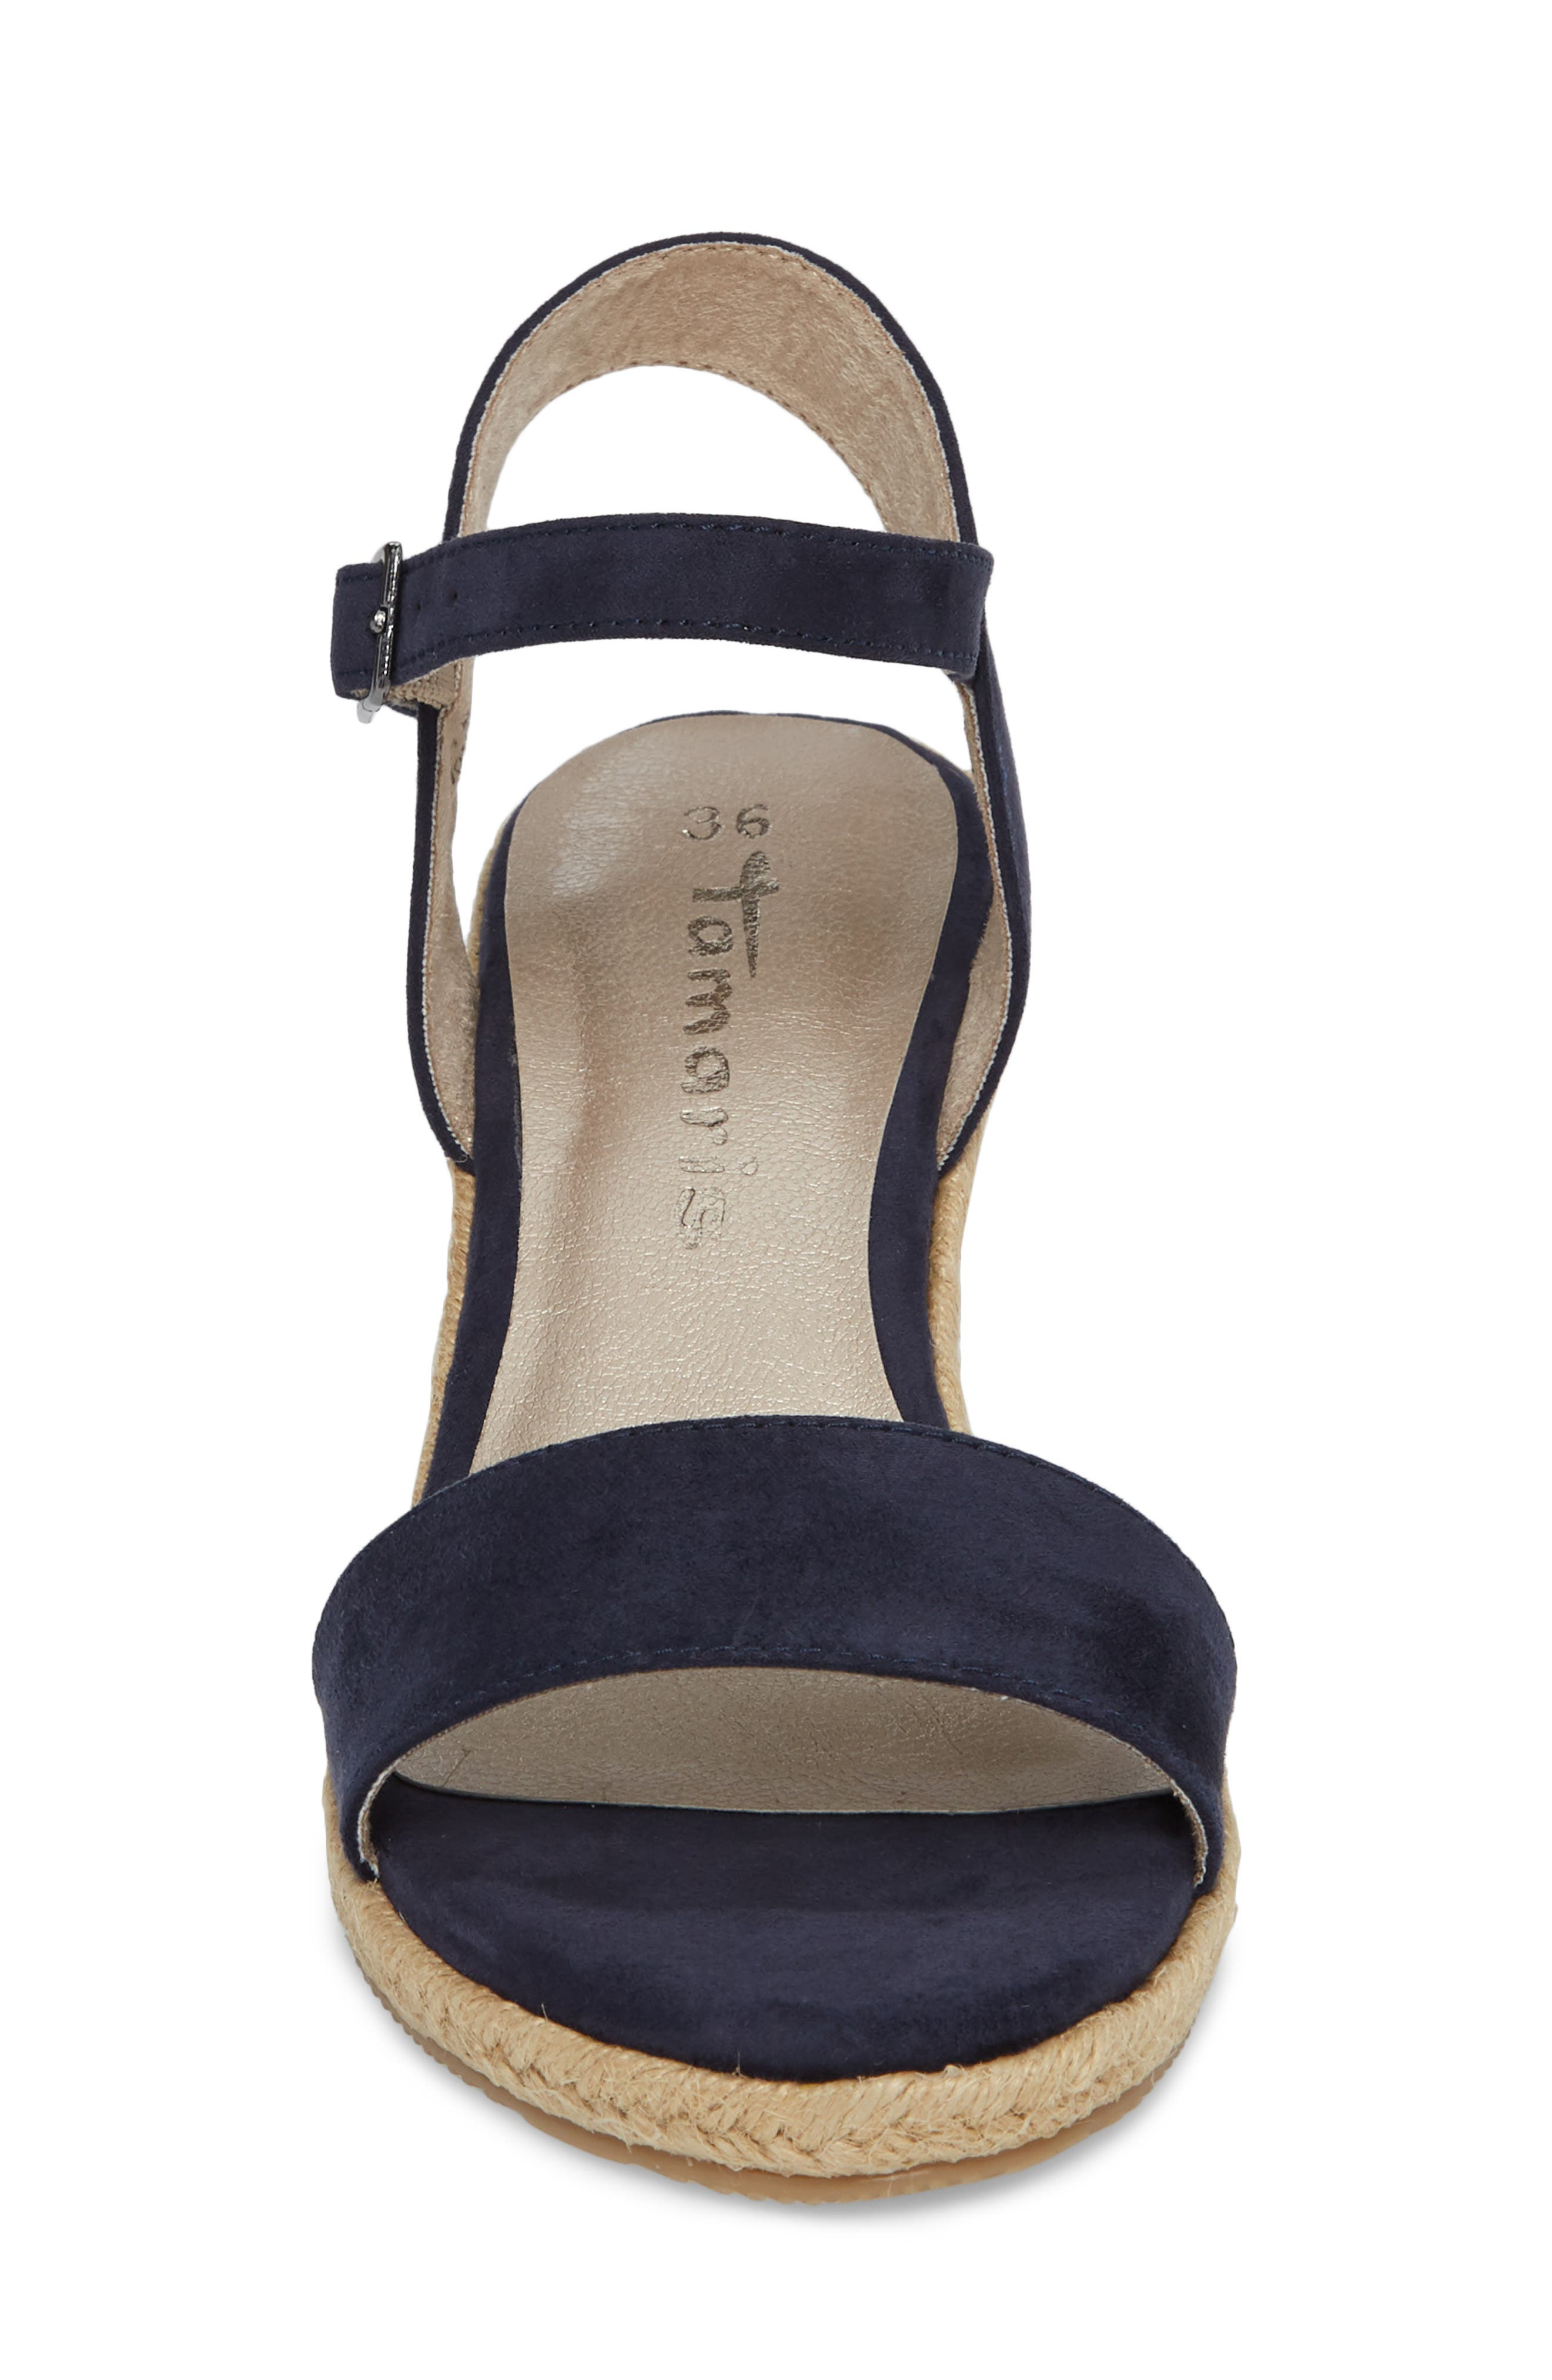 Livia Espadrille Wedge Sandal,                             Alternate thumbnail 4, color,                             NAVY FABRIC